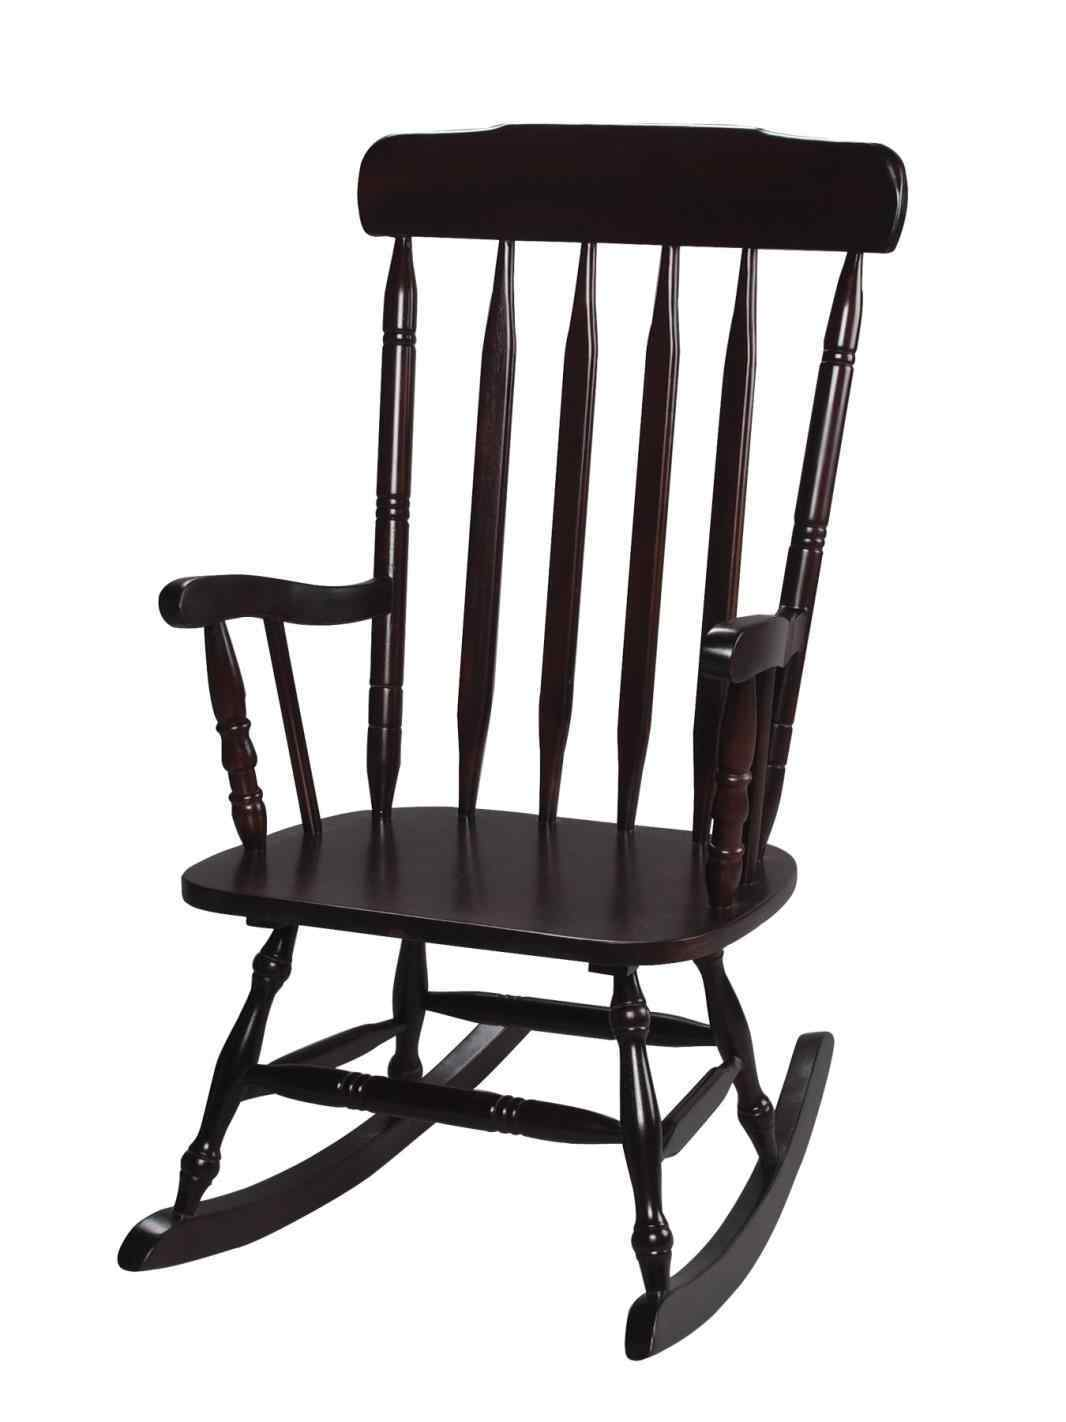 1066x1422 Inspiring The Collection Of Chair Silhouette Furniture Stock